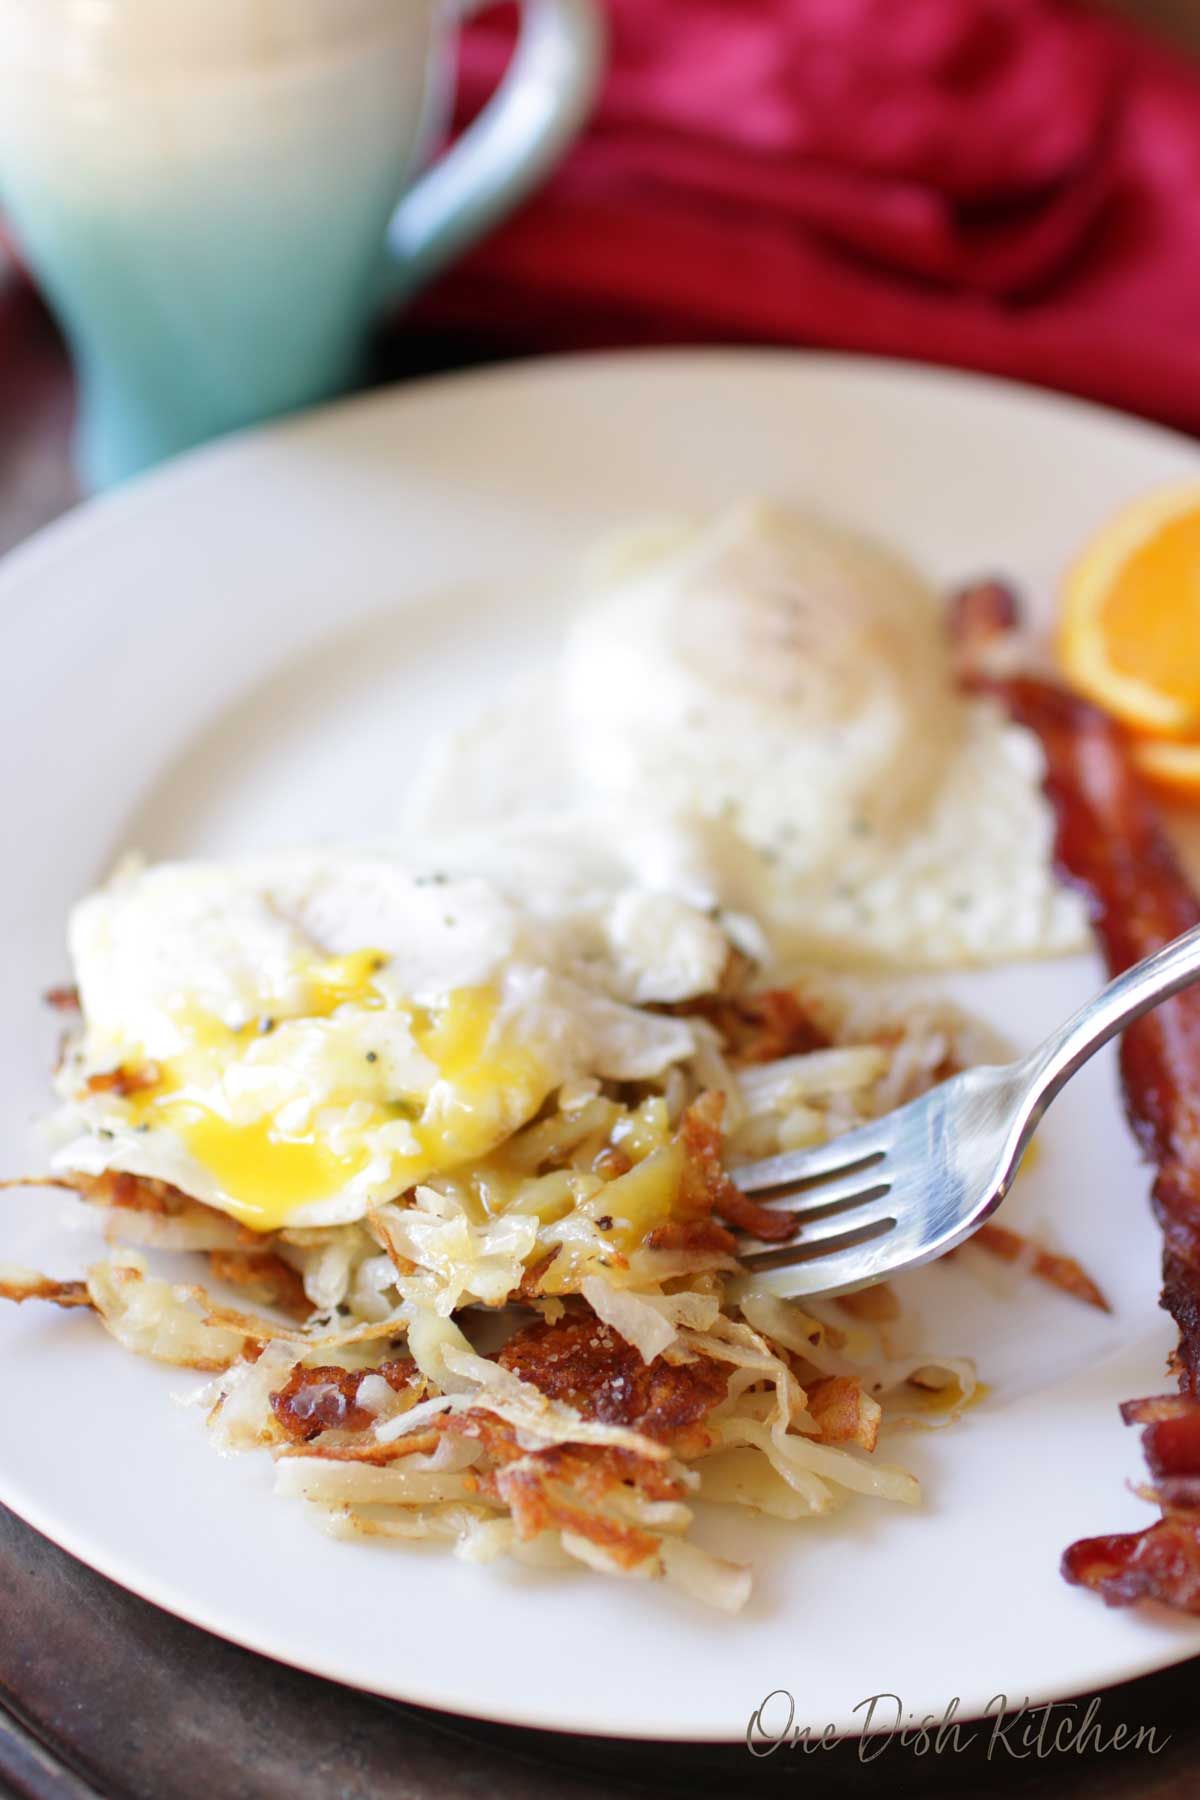 A forkful of hash browns and runny eggs from a plate with slices of bacon and orange slices